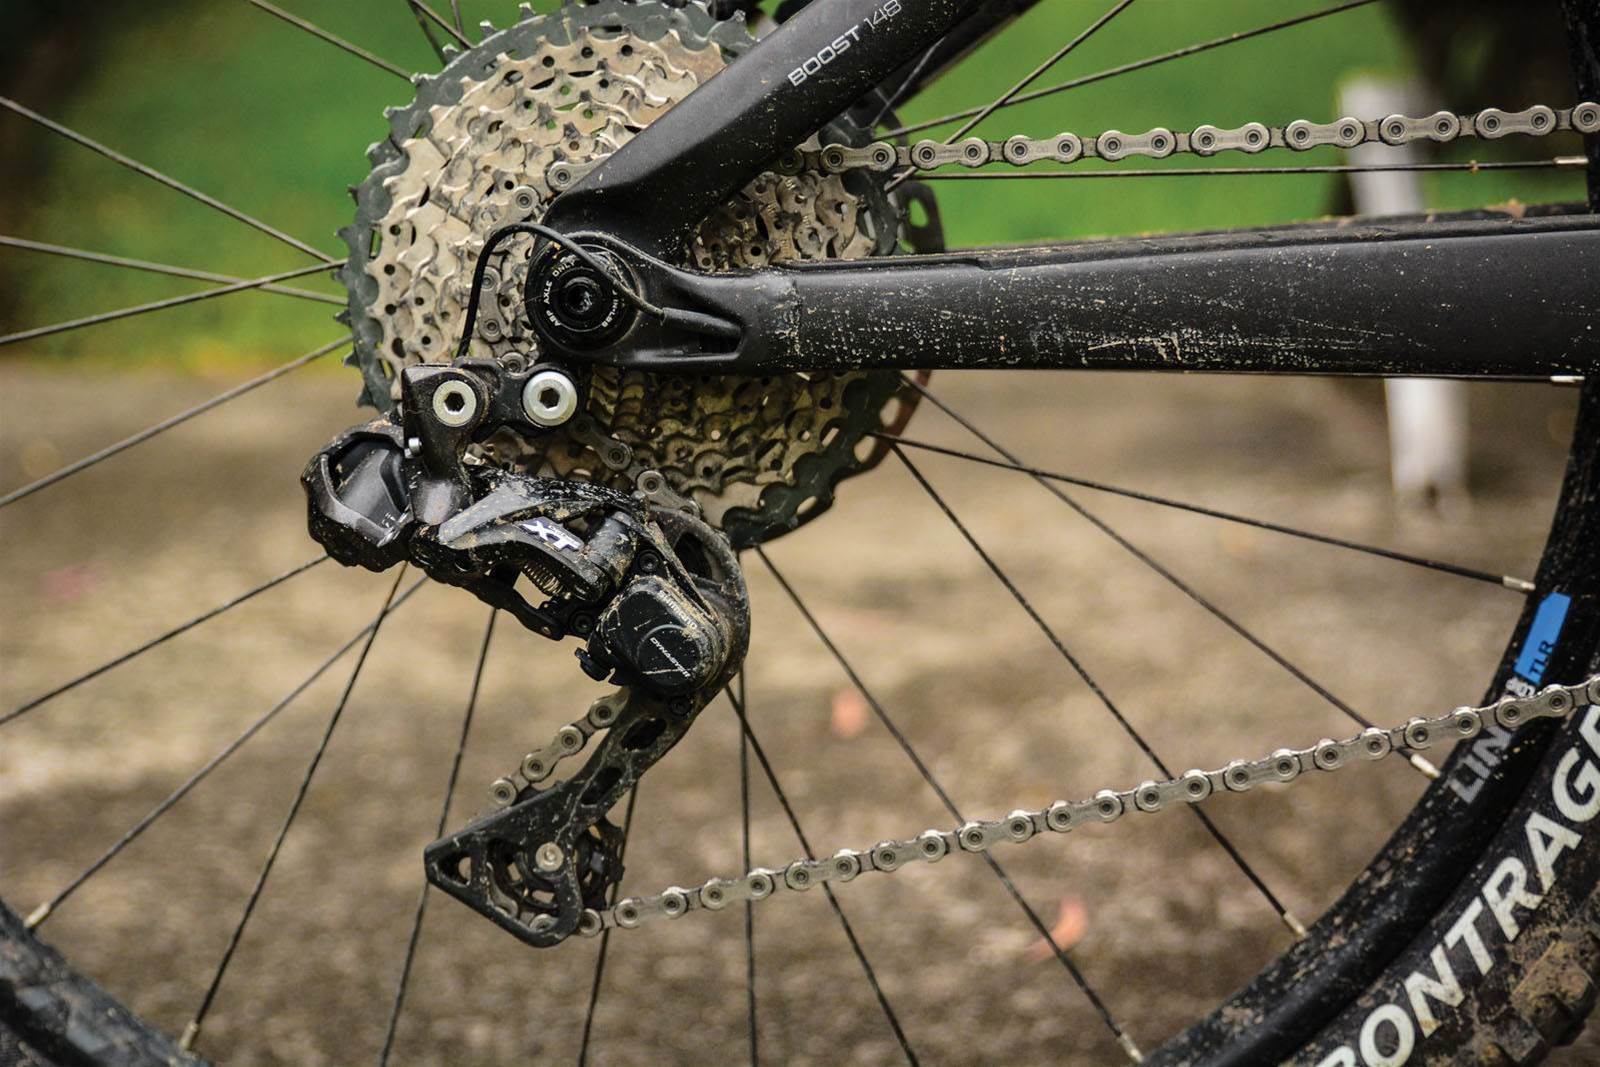 REVIEW: Shimano Deore XT Mechanical vs Di2